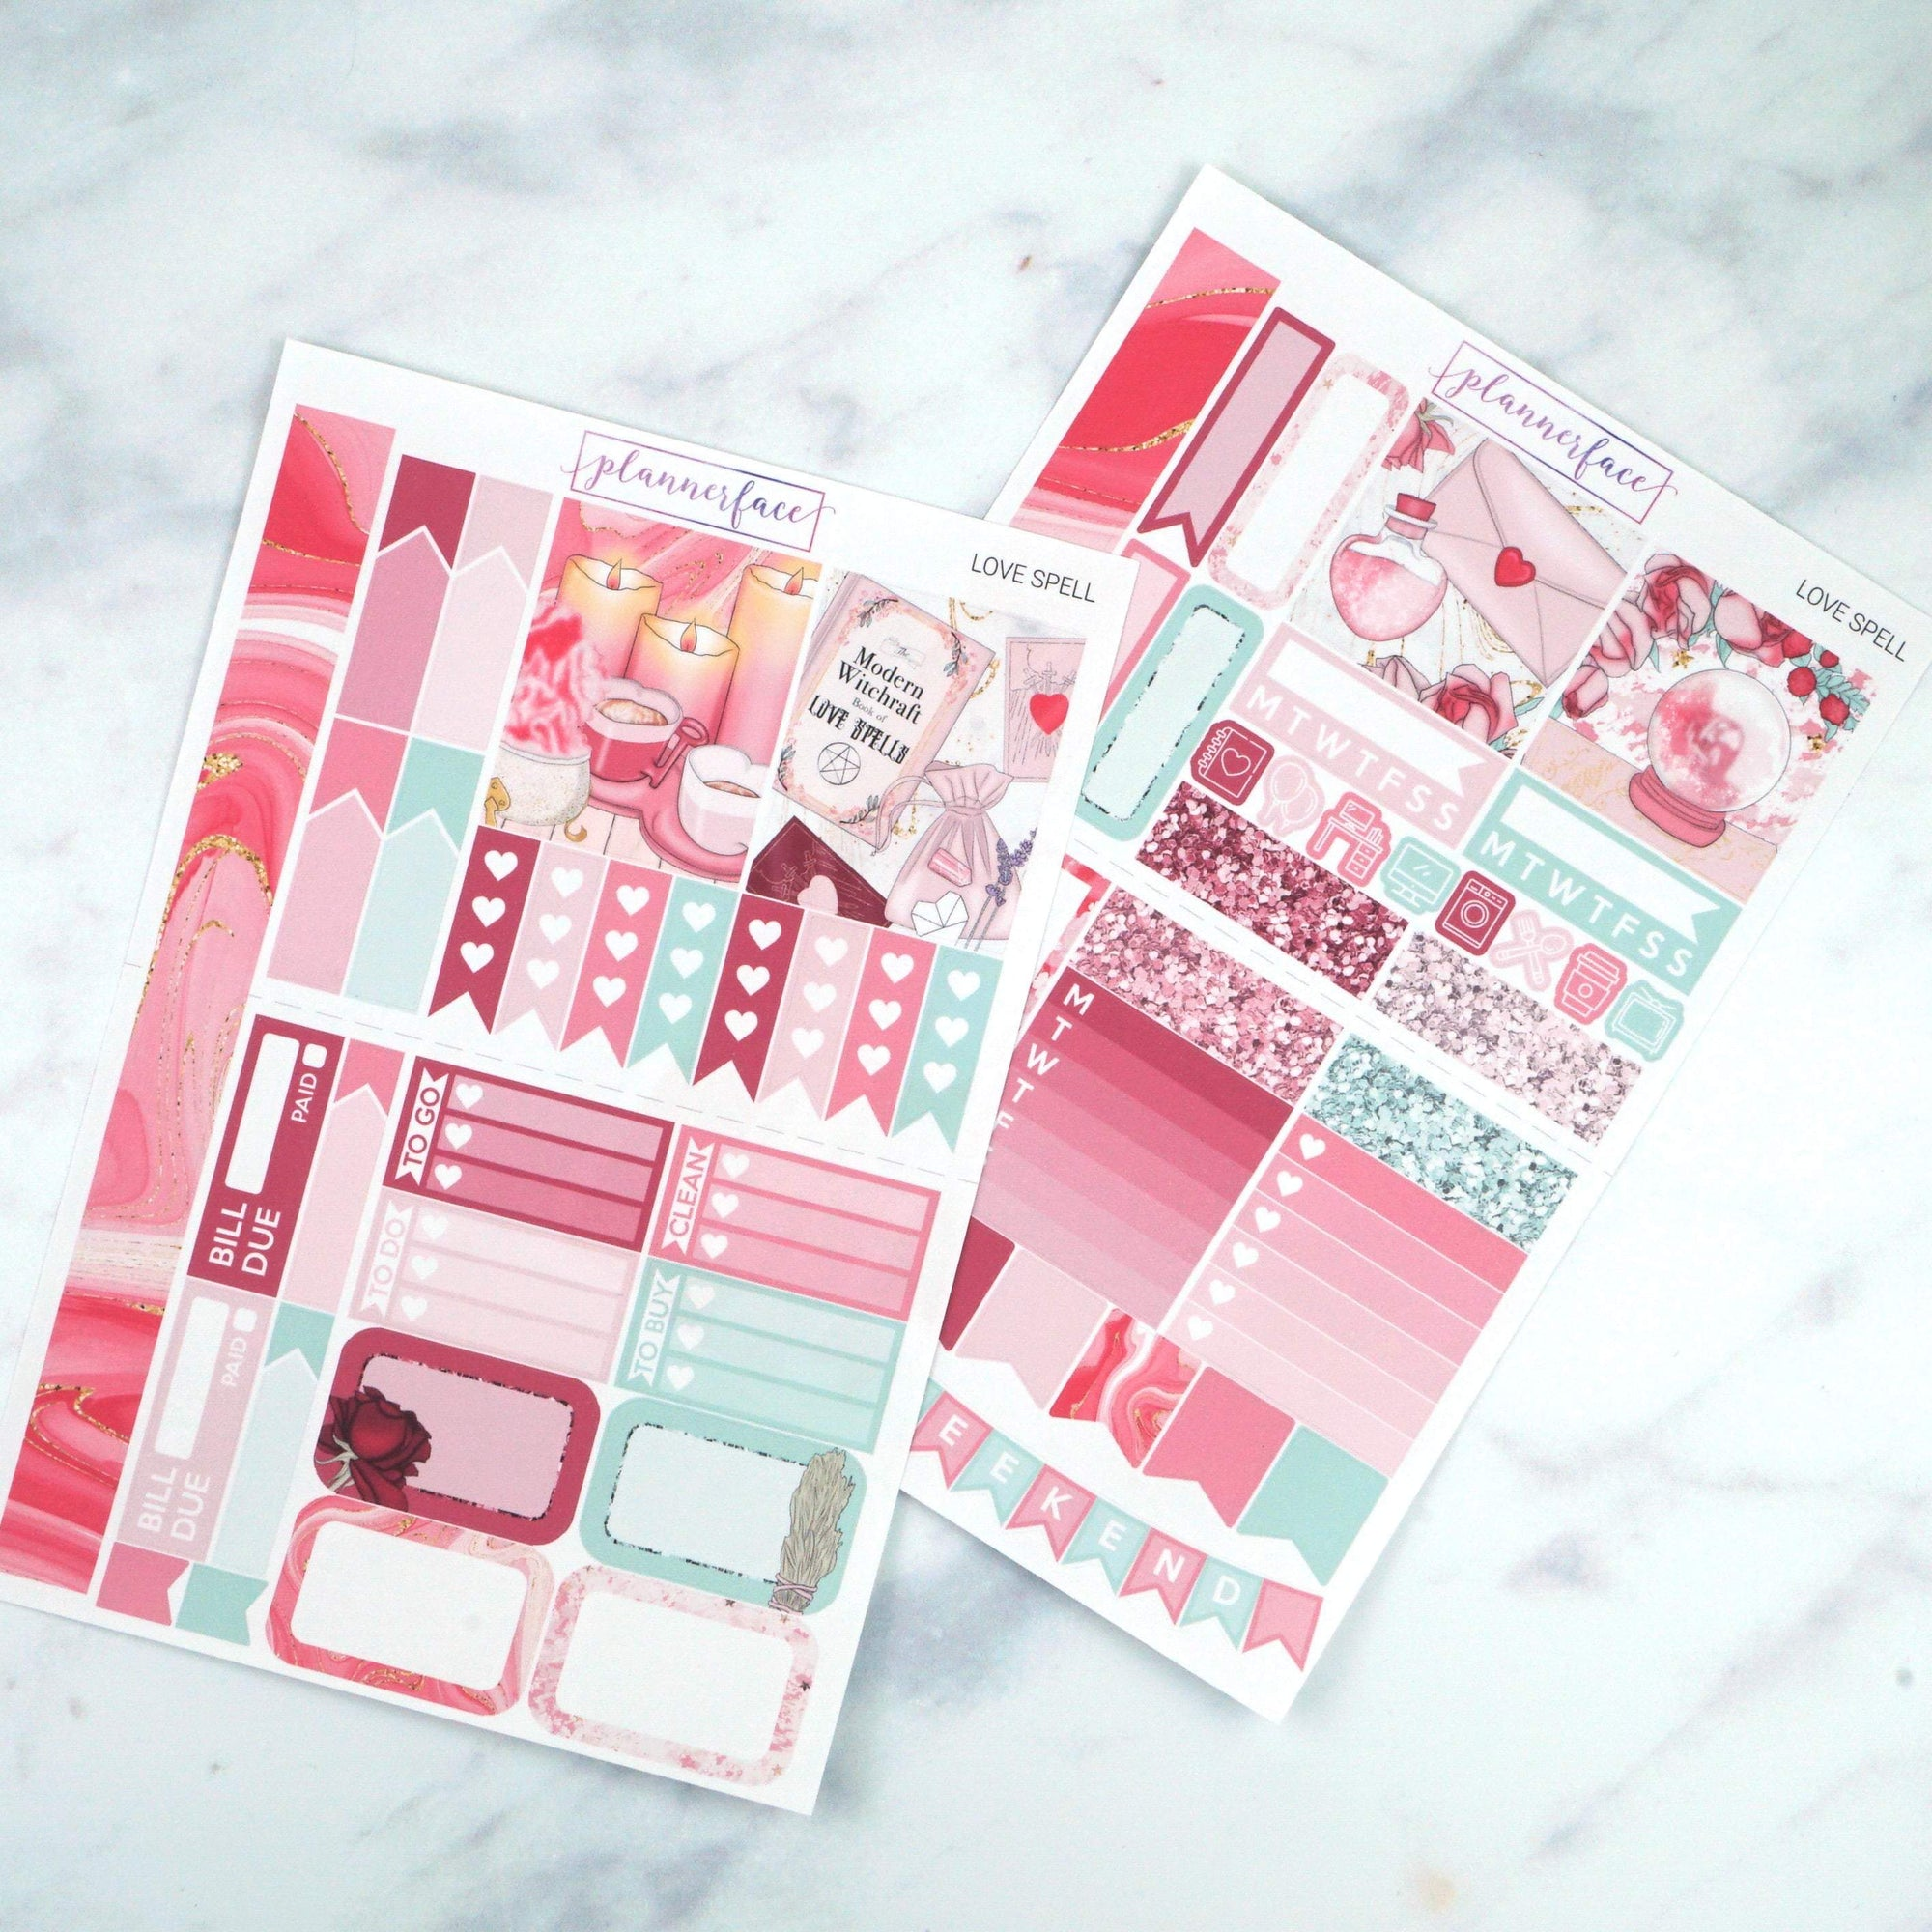 Plannerface Love Spell Mini Kit Planner Stickers